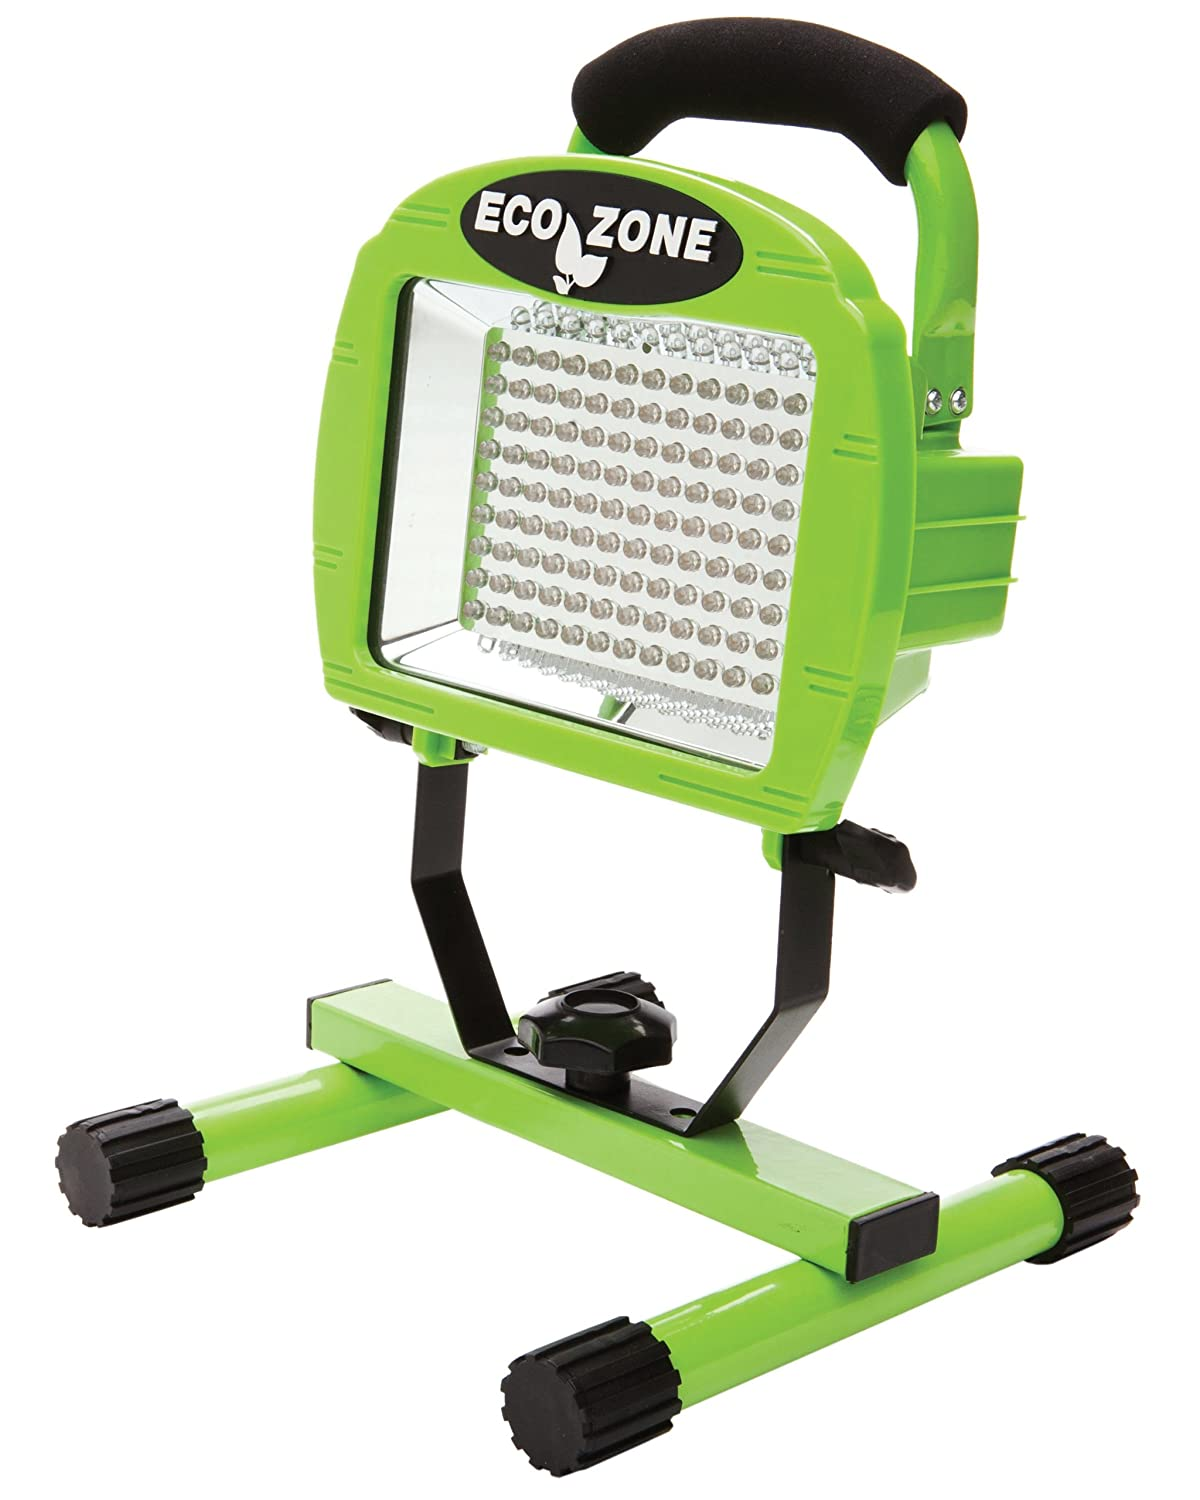 Portable Work Light LED Workshop Lighting Garage 108 Watt